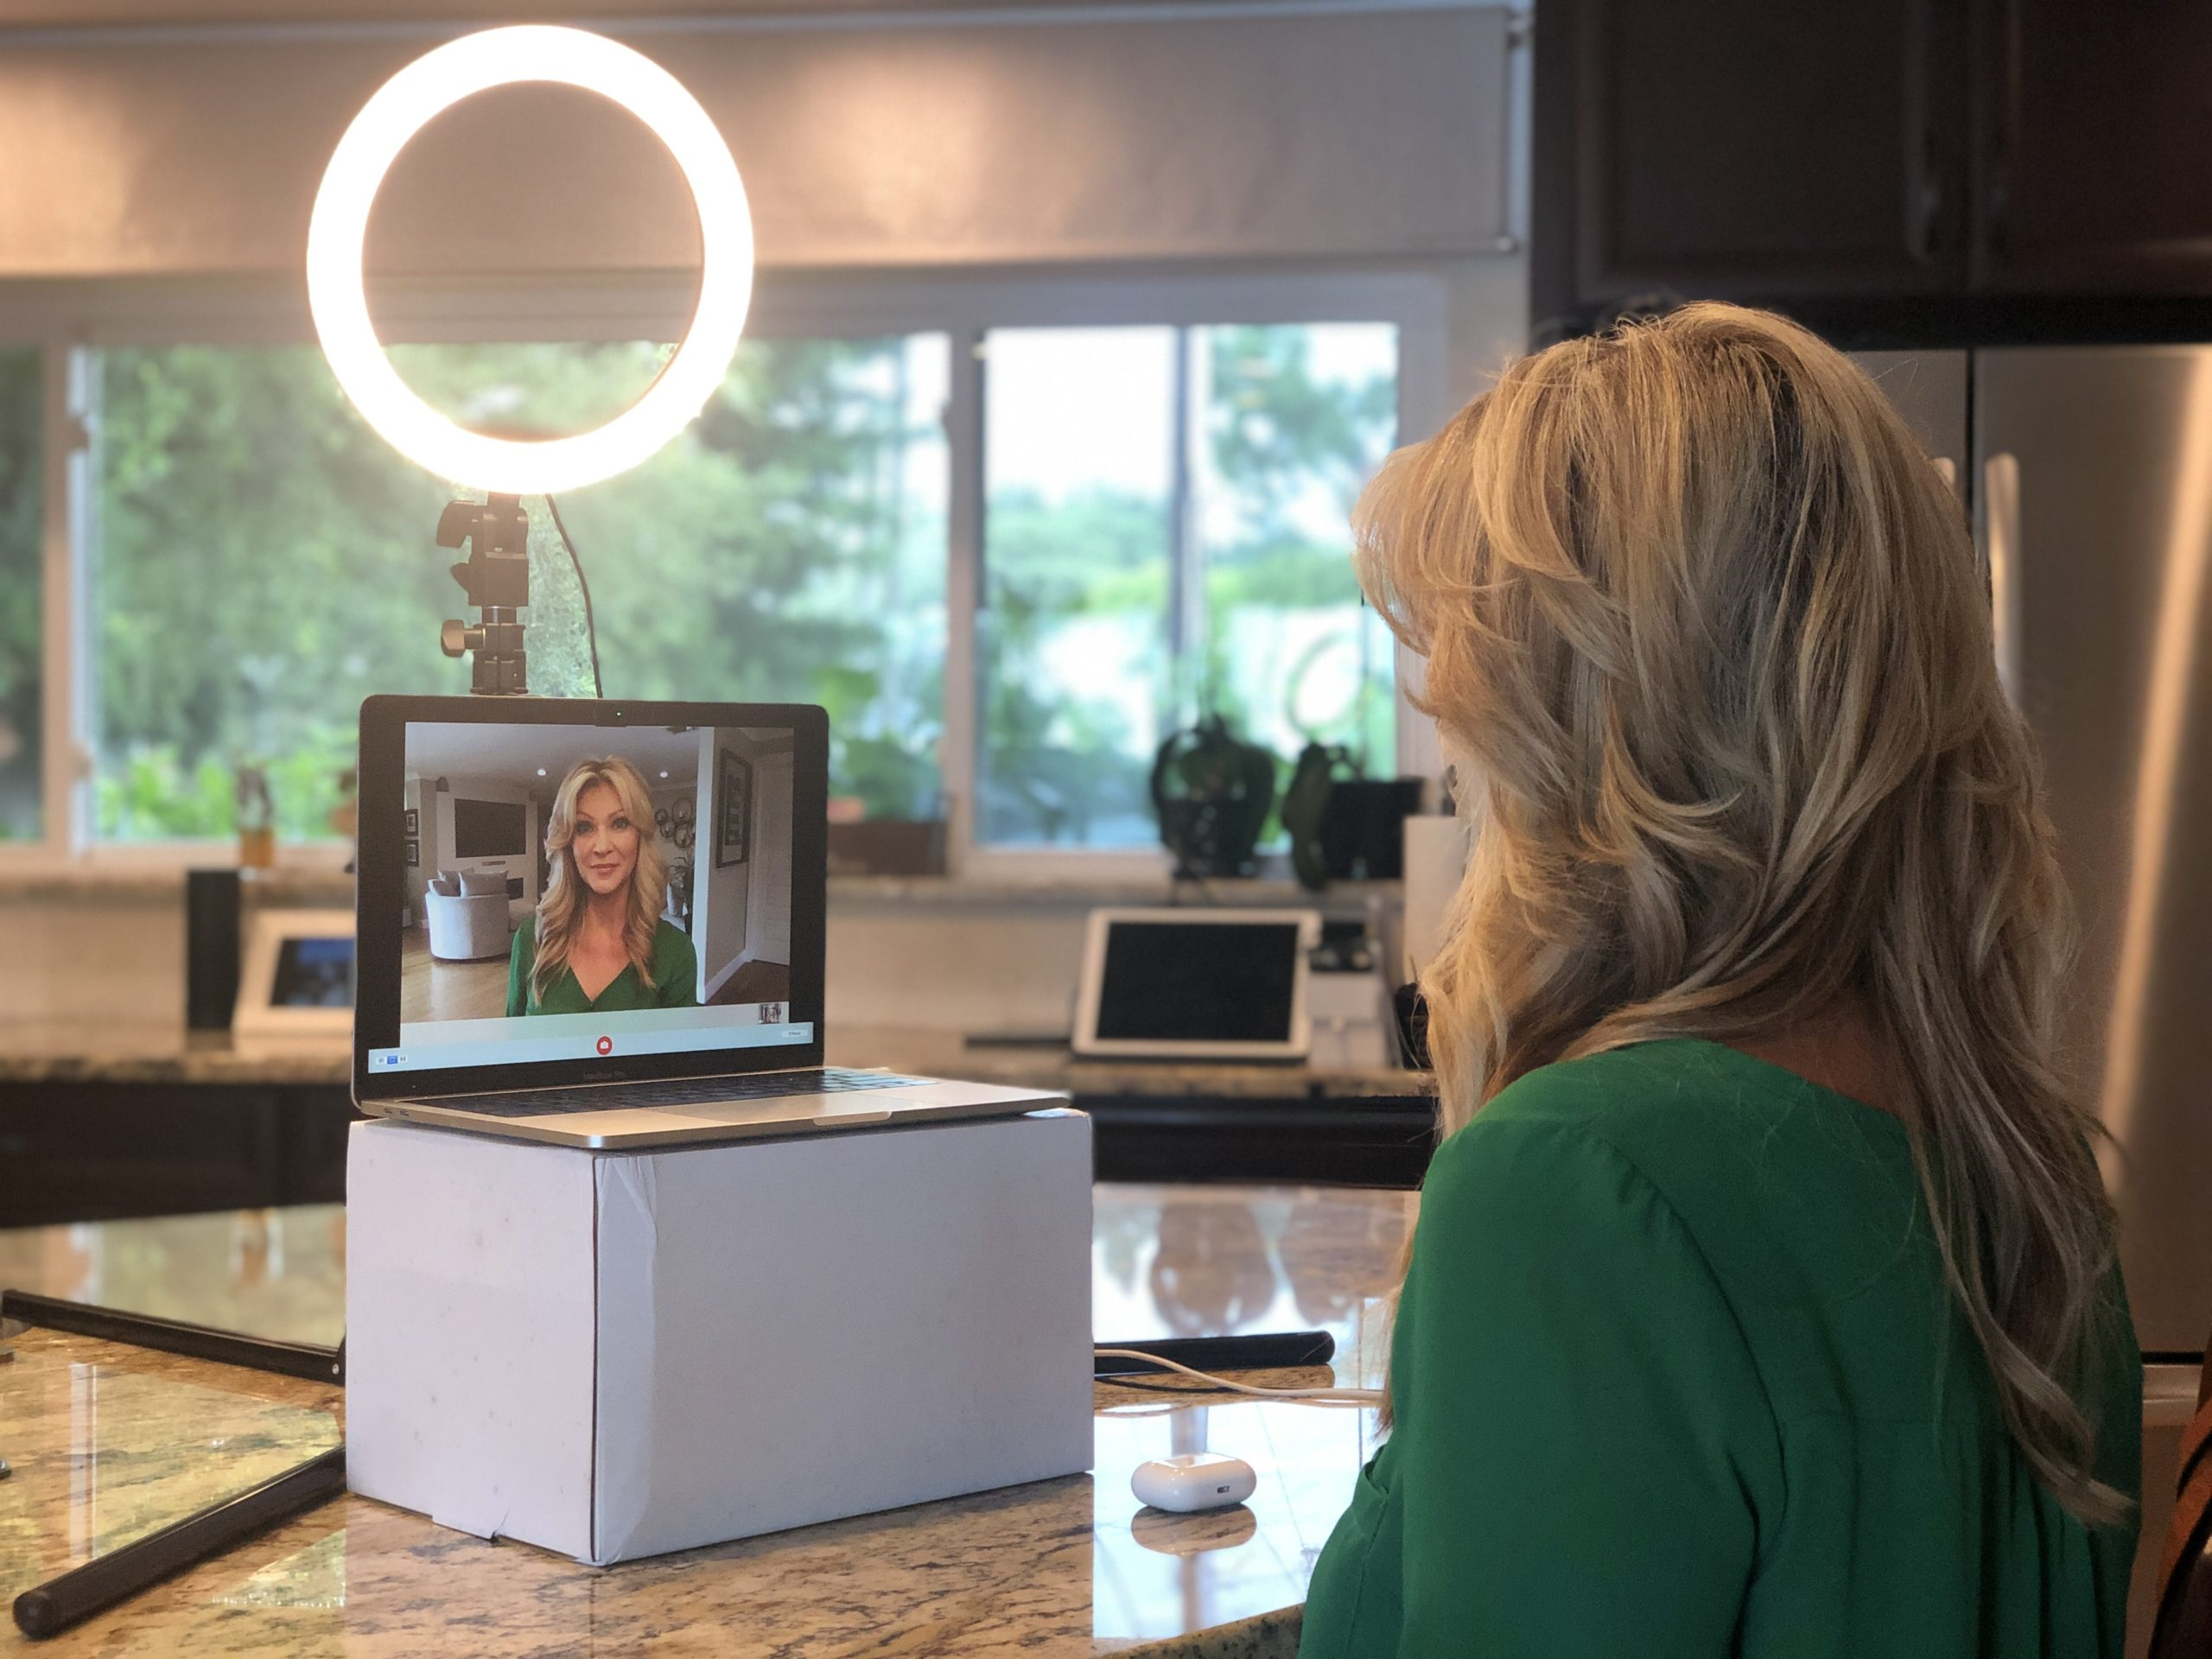 Camera and Lighting placement for looking good on video chats and virtual meetings, Zoom, Skype, Google Meets, Microsoft Meetup, IGTV